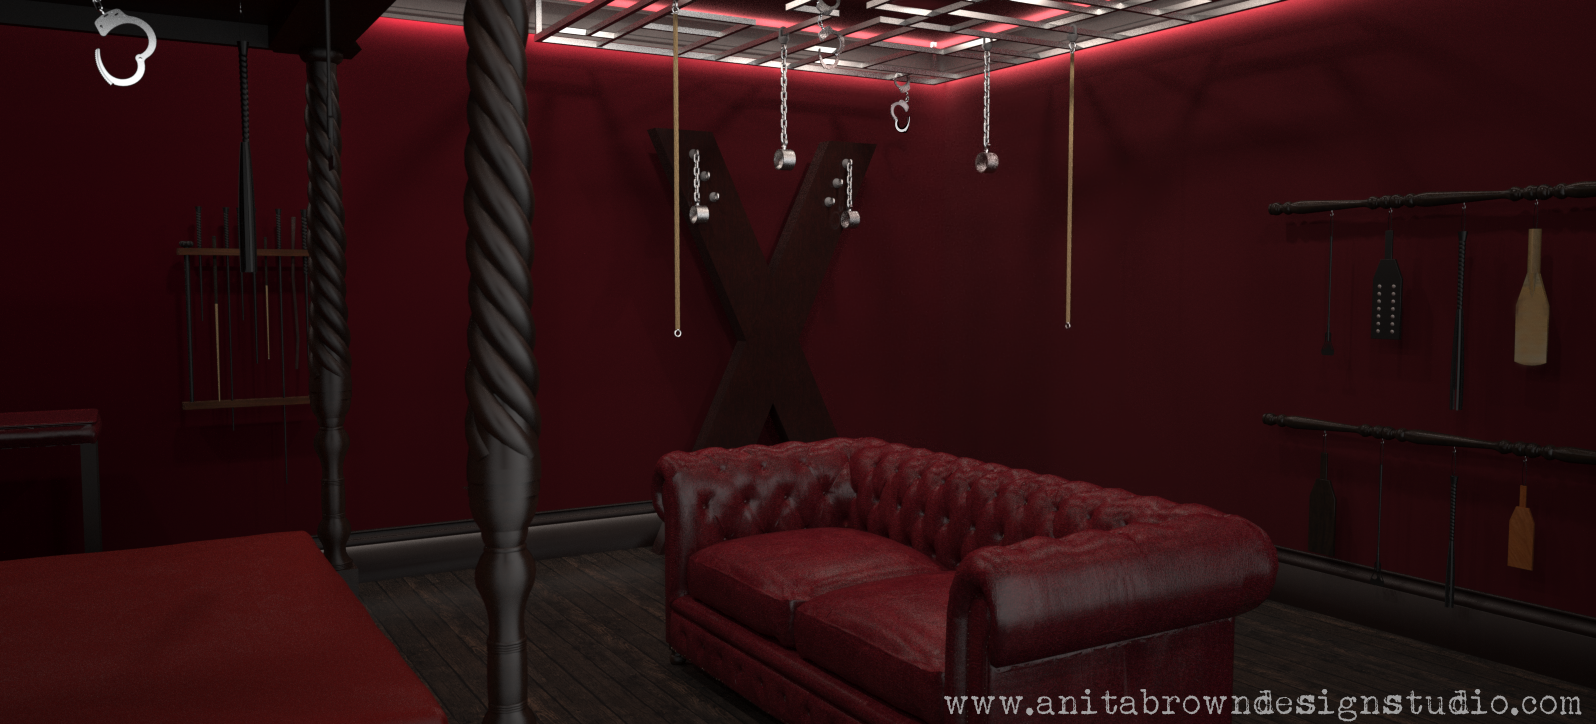 Fifty Shades Of Grey Saucy 3d Visuals Anita Brown 3d Visualisation